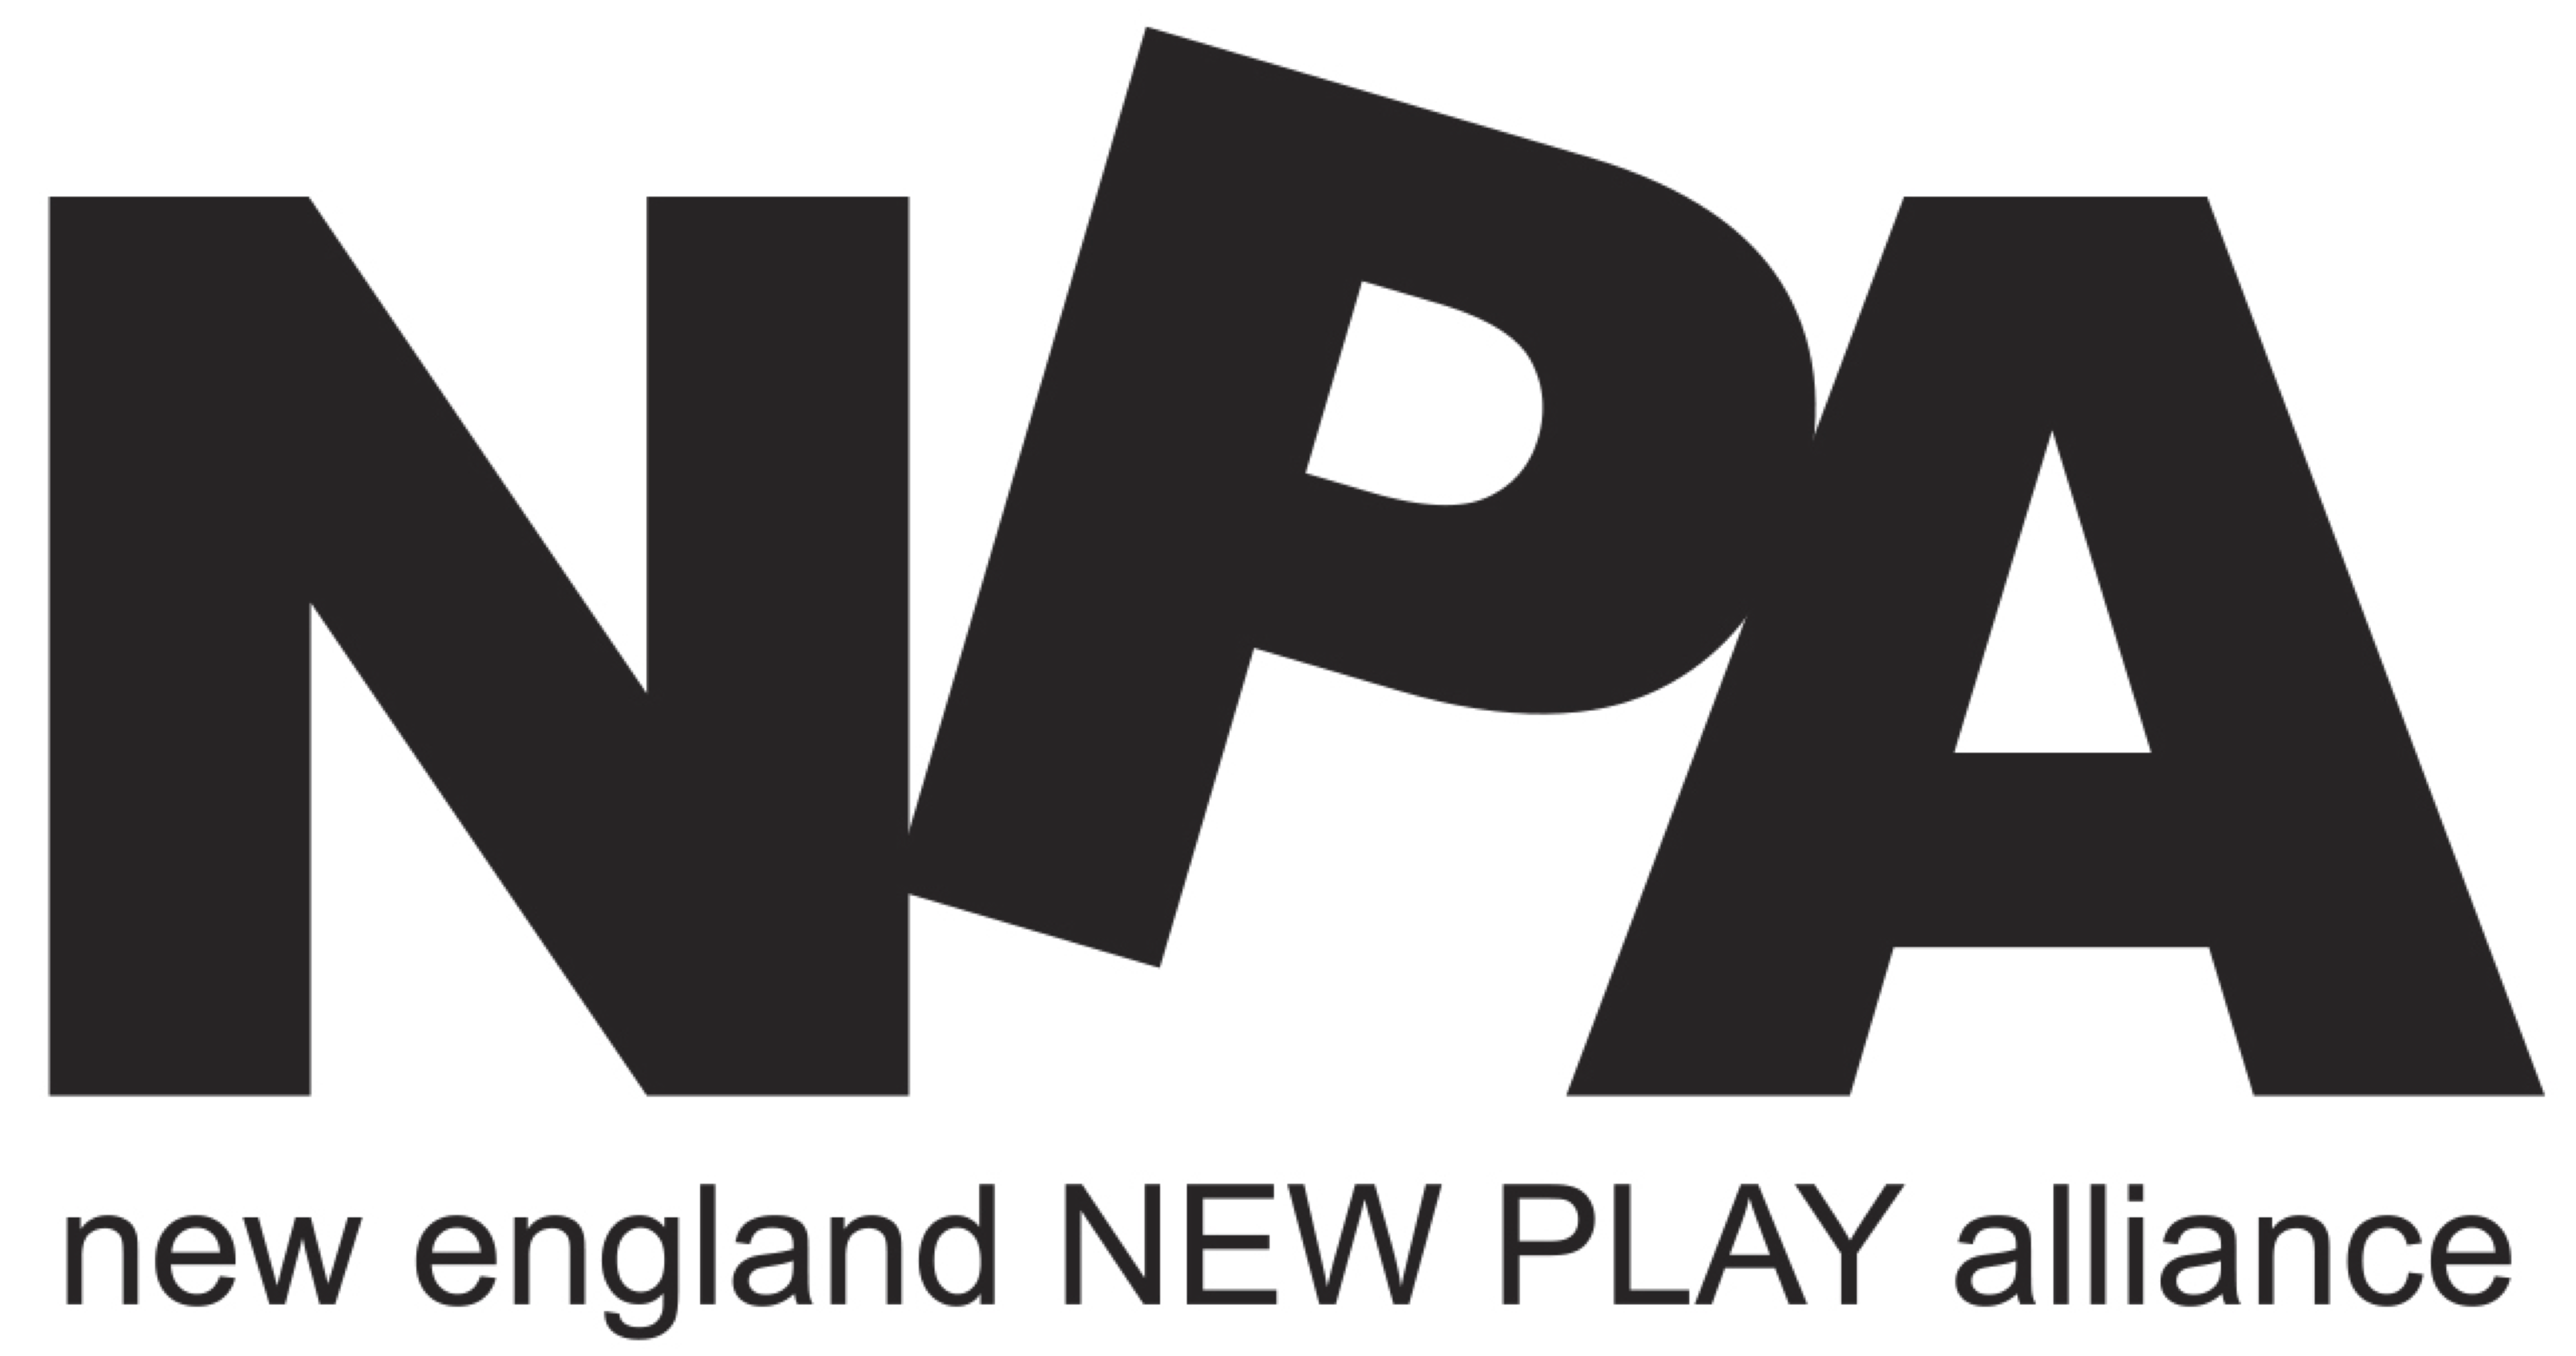 NPA new england NEW PLAY alliance